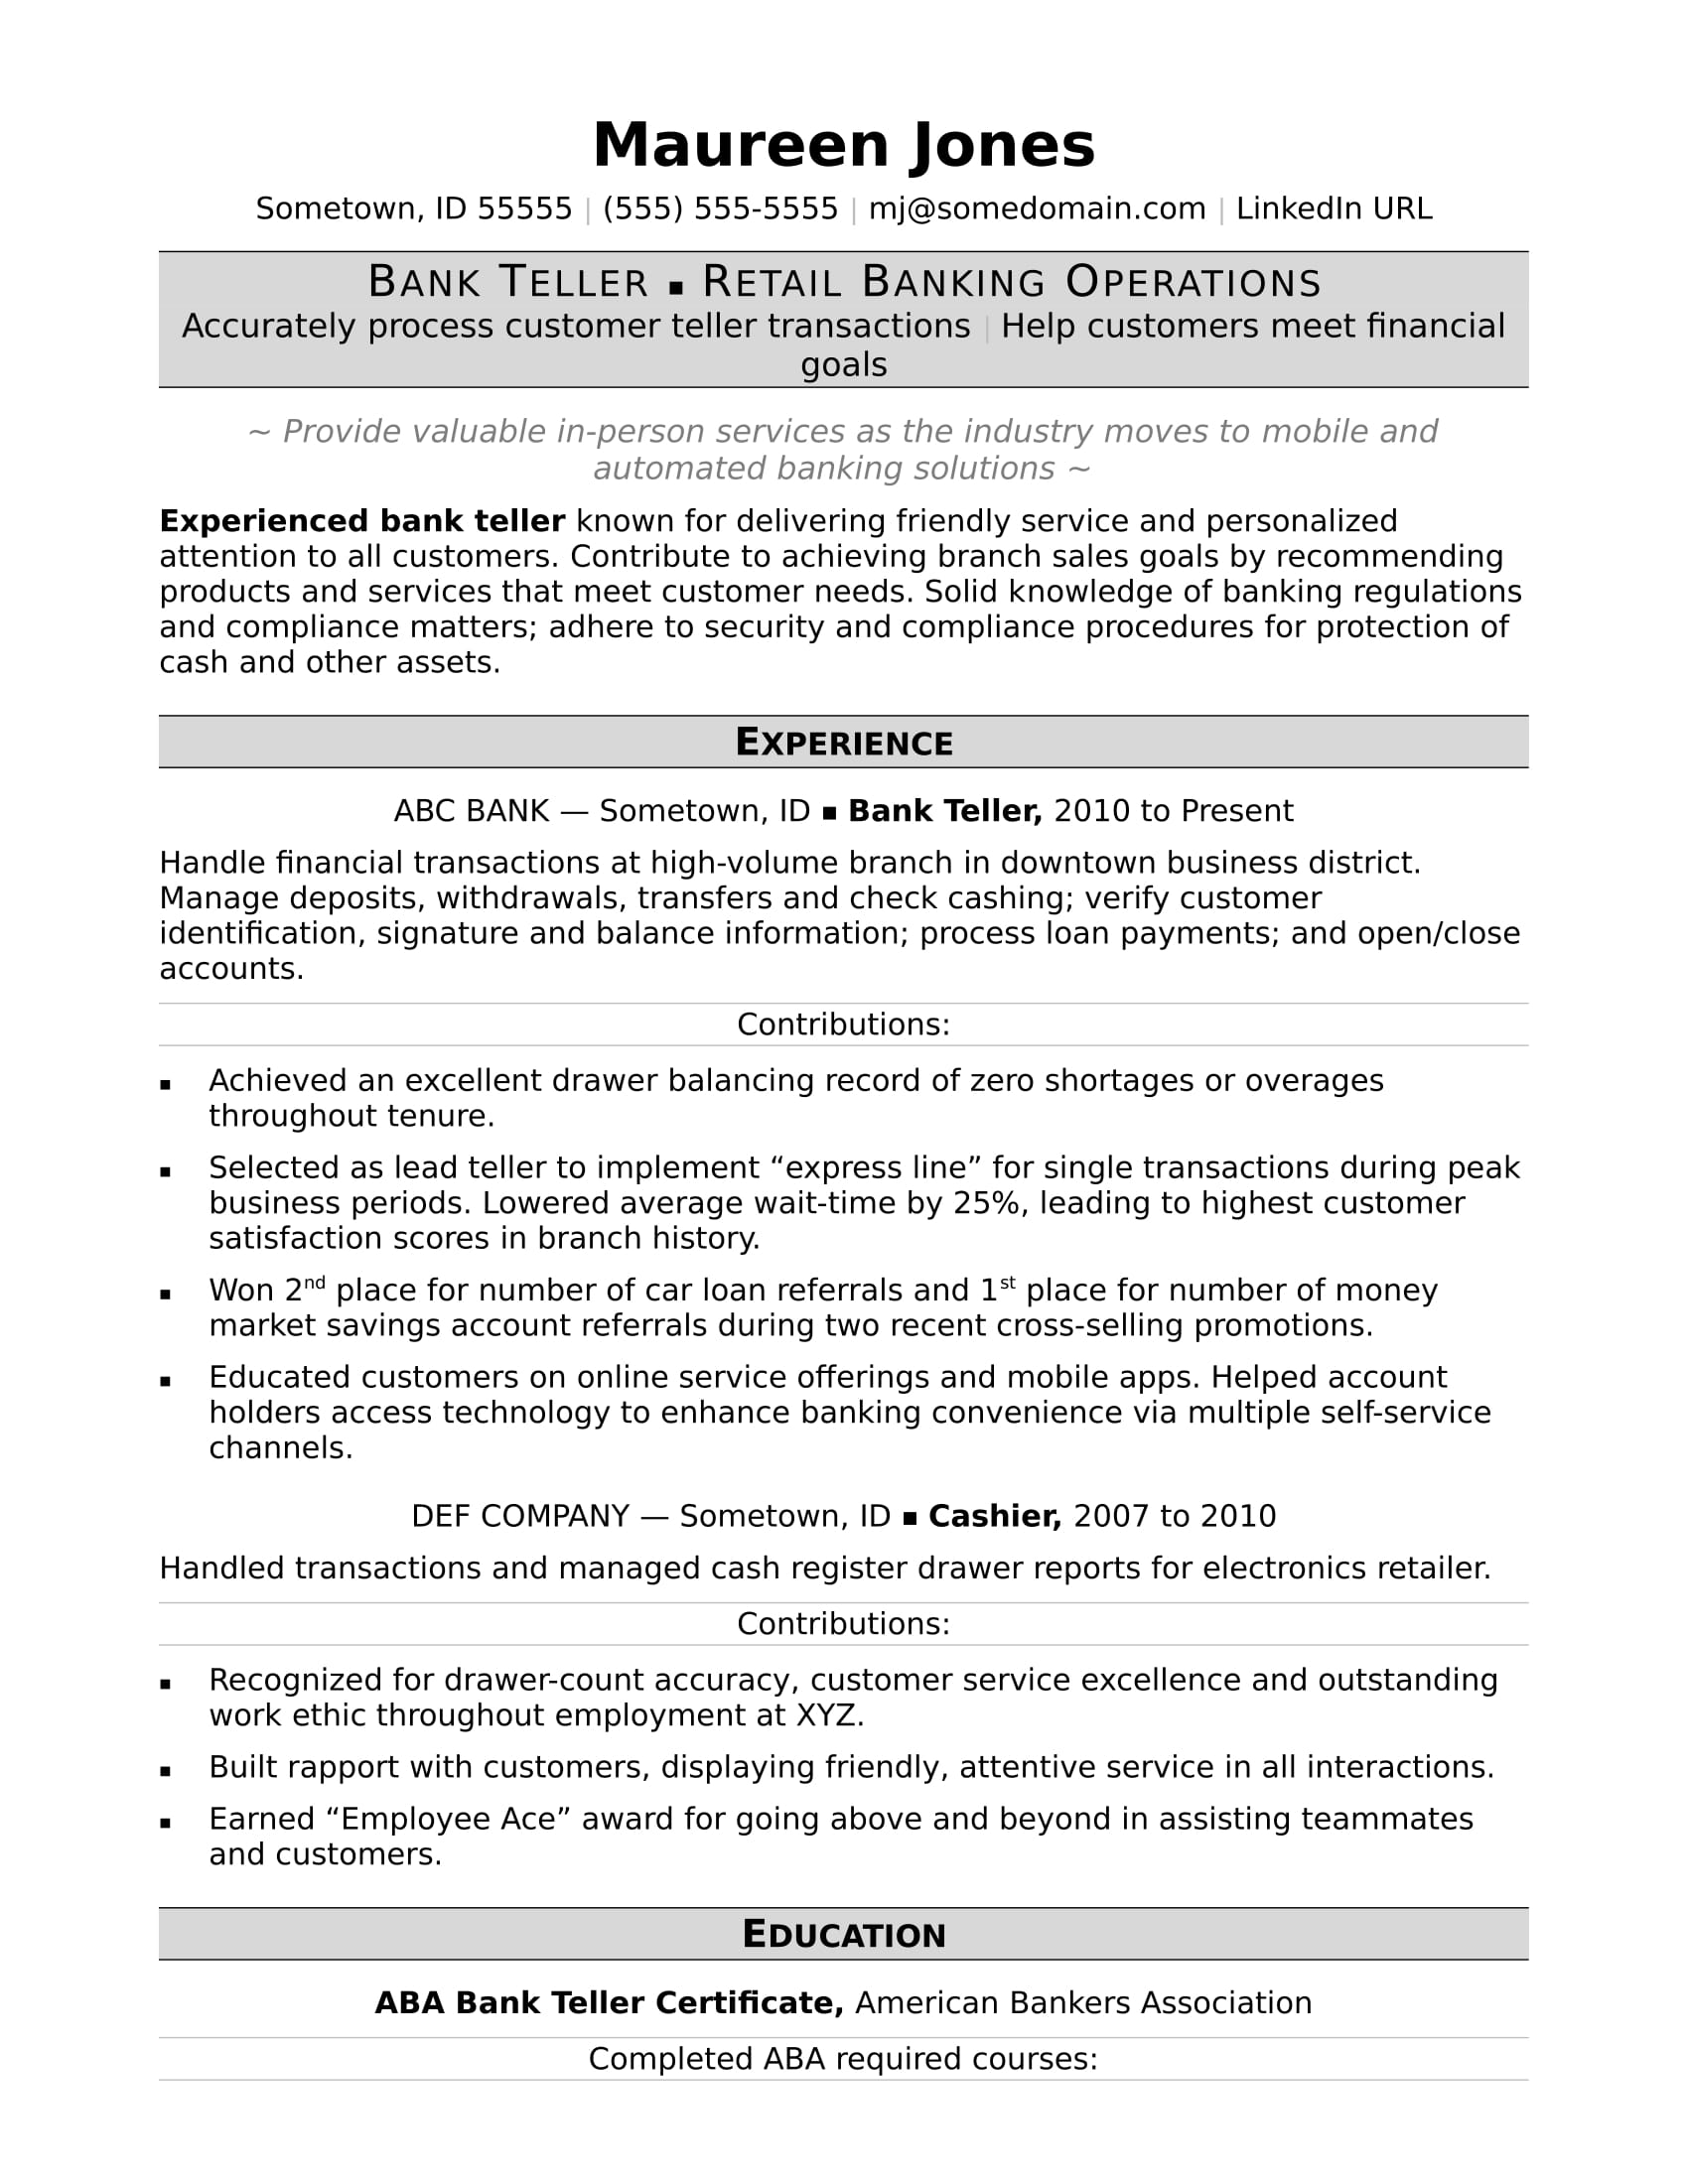 bank teller resume sample - Bank Teller Resume